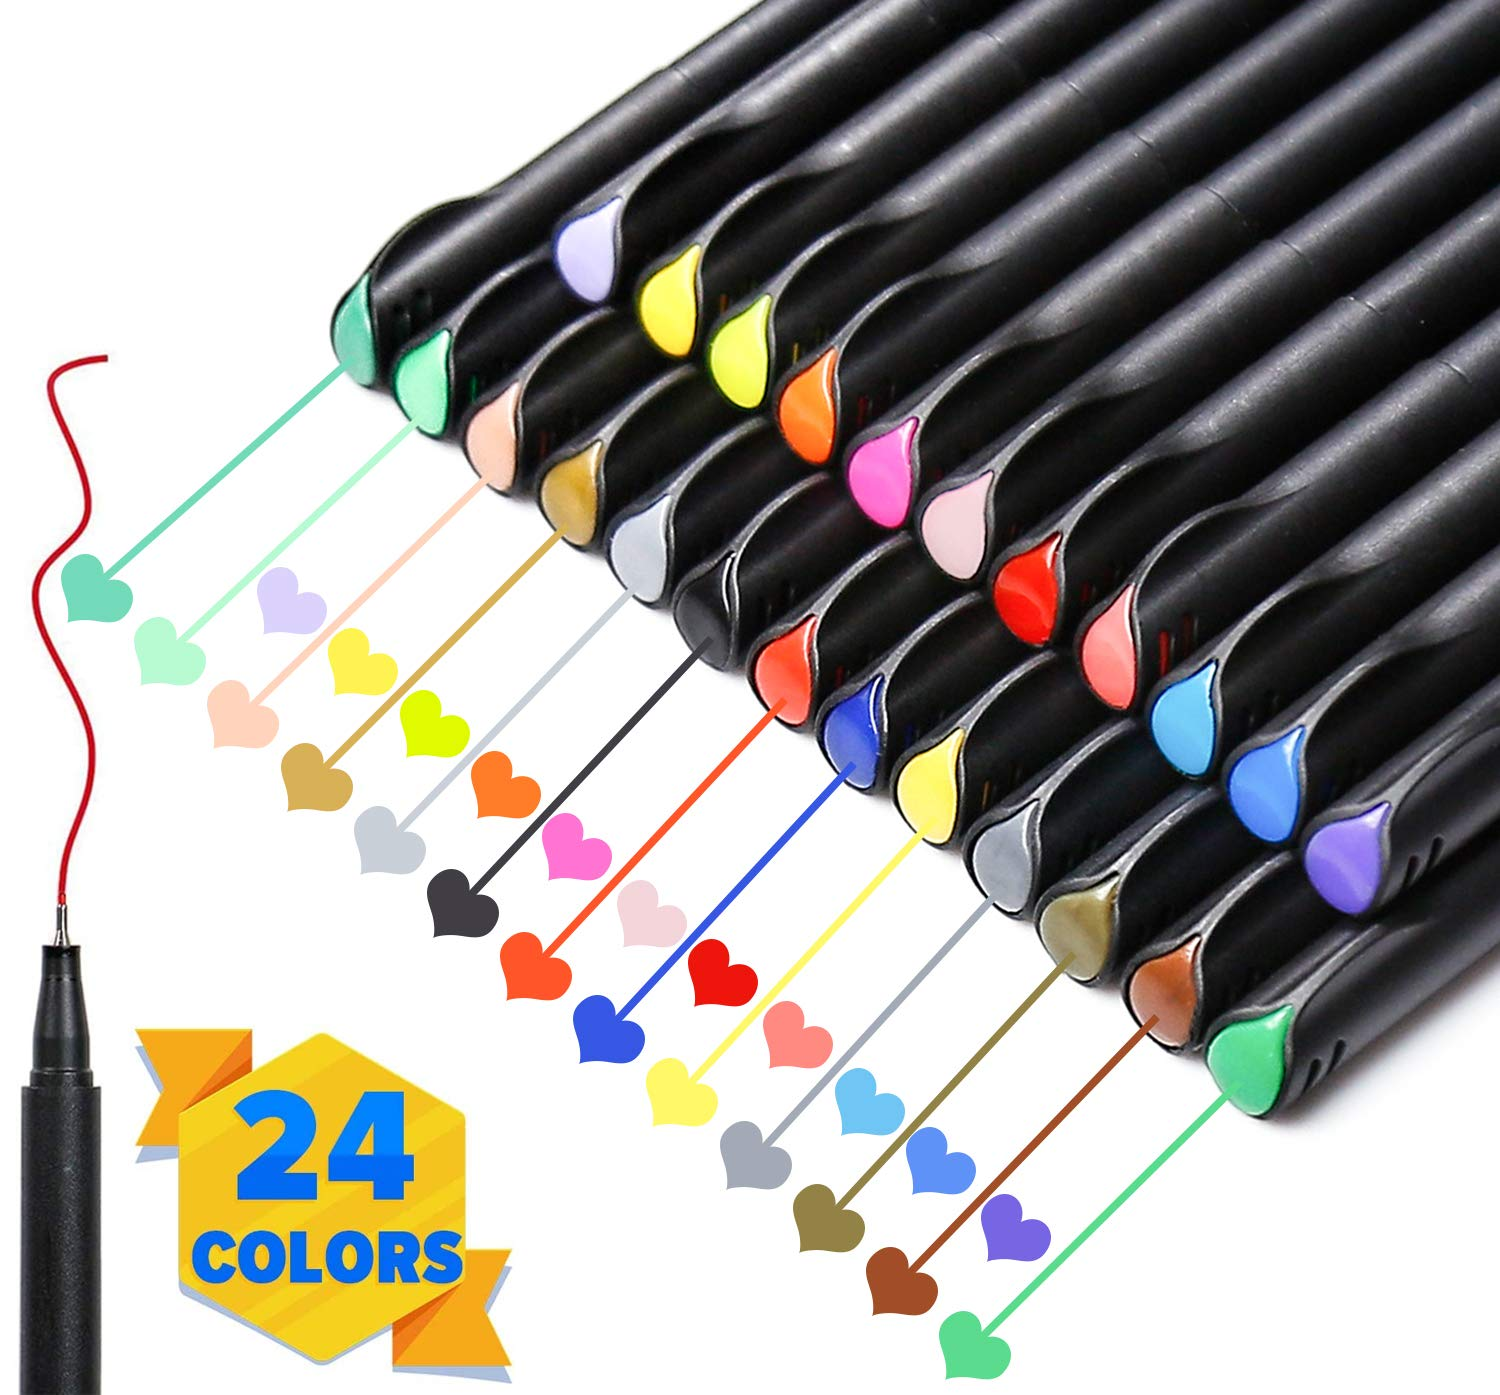 PuTwo Colored Pens, 24 Colors 0.4mm Fine Point Pens, Fine Tip Markers, Planner Accessories, Journaling Supplies, Fineliner Pens for Journaling, Drawing, Coloring, Scrapbooking